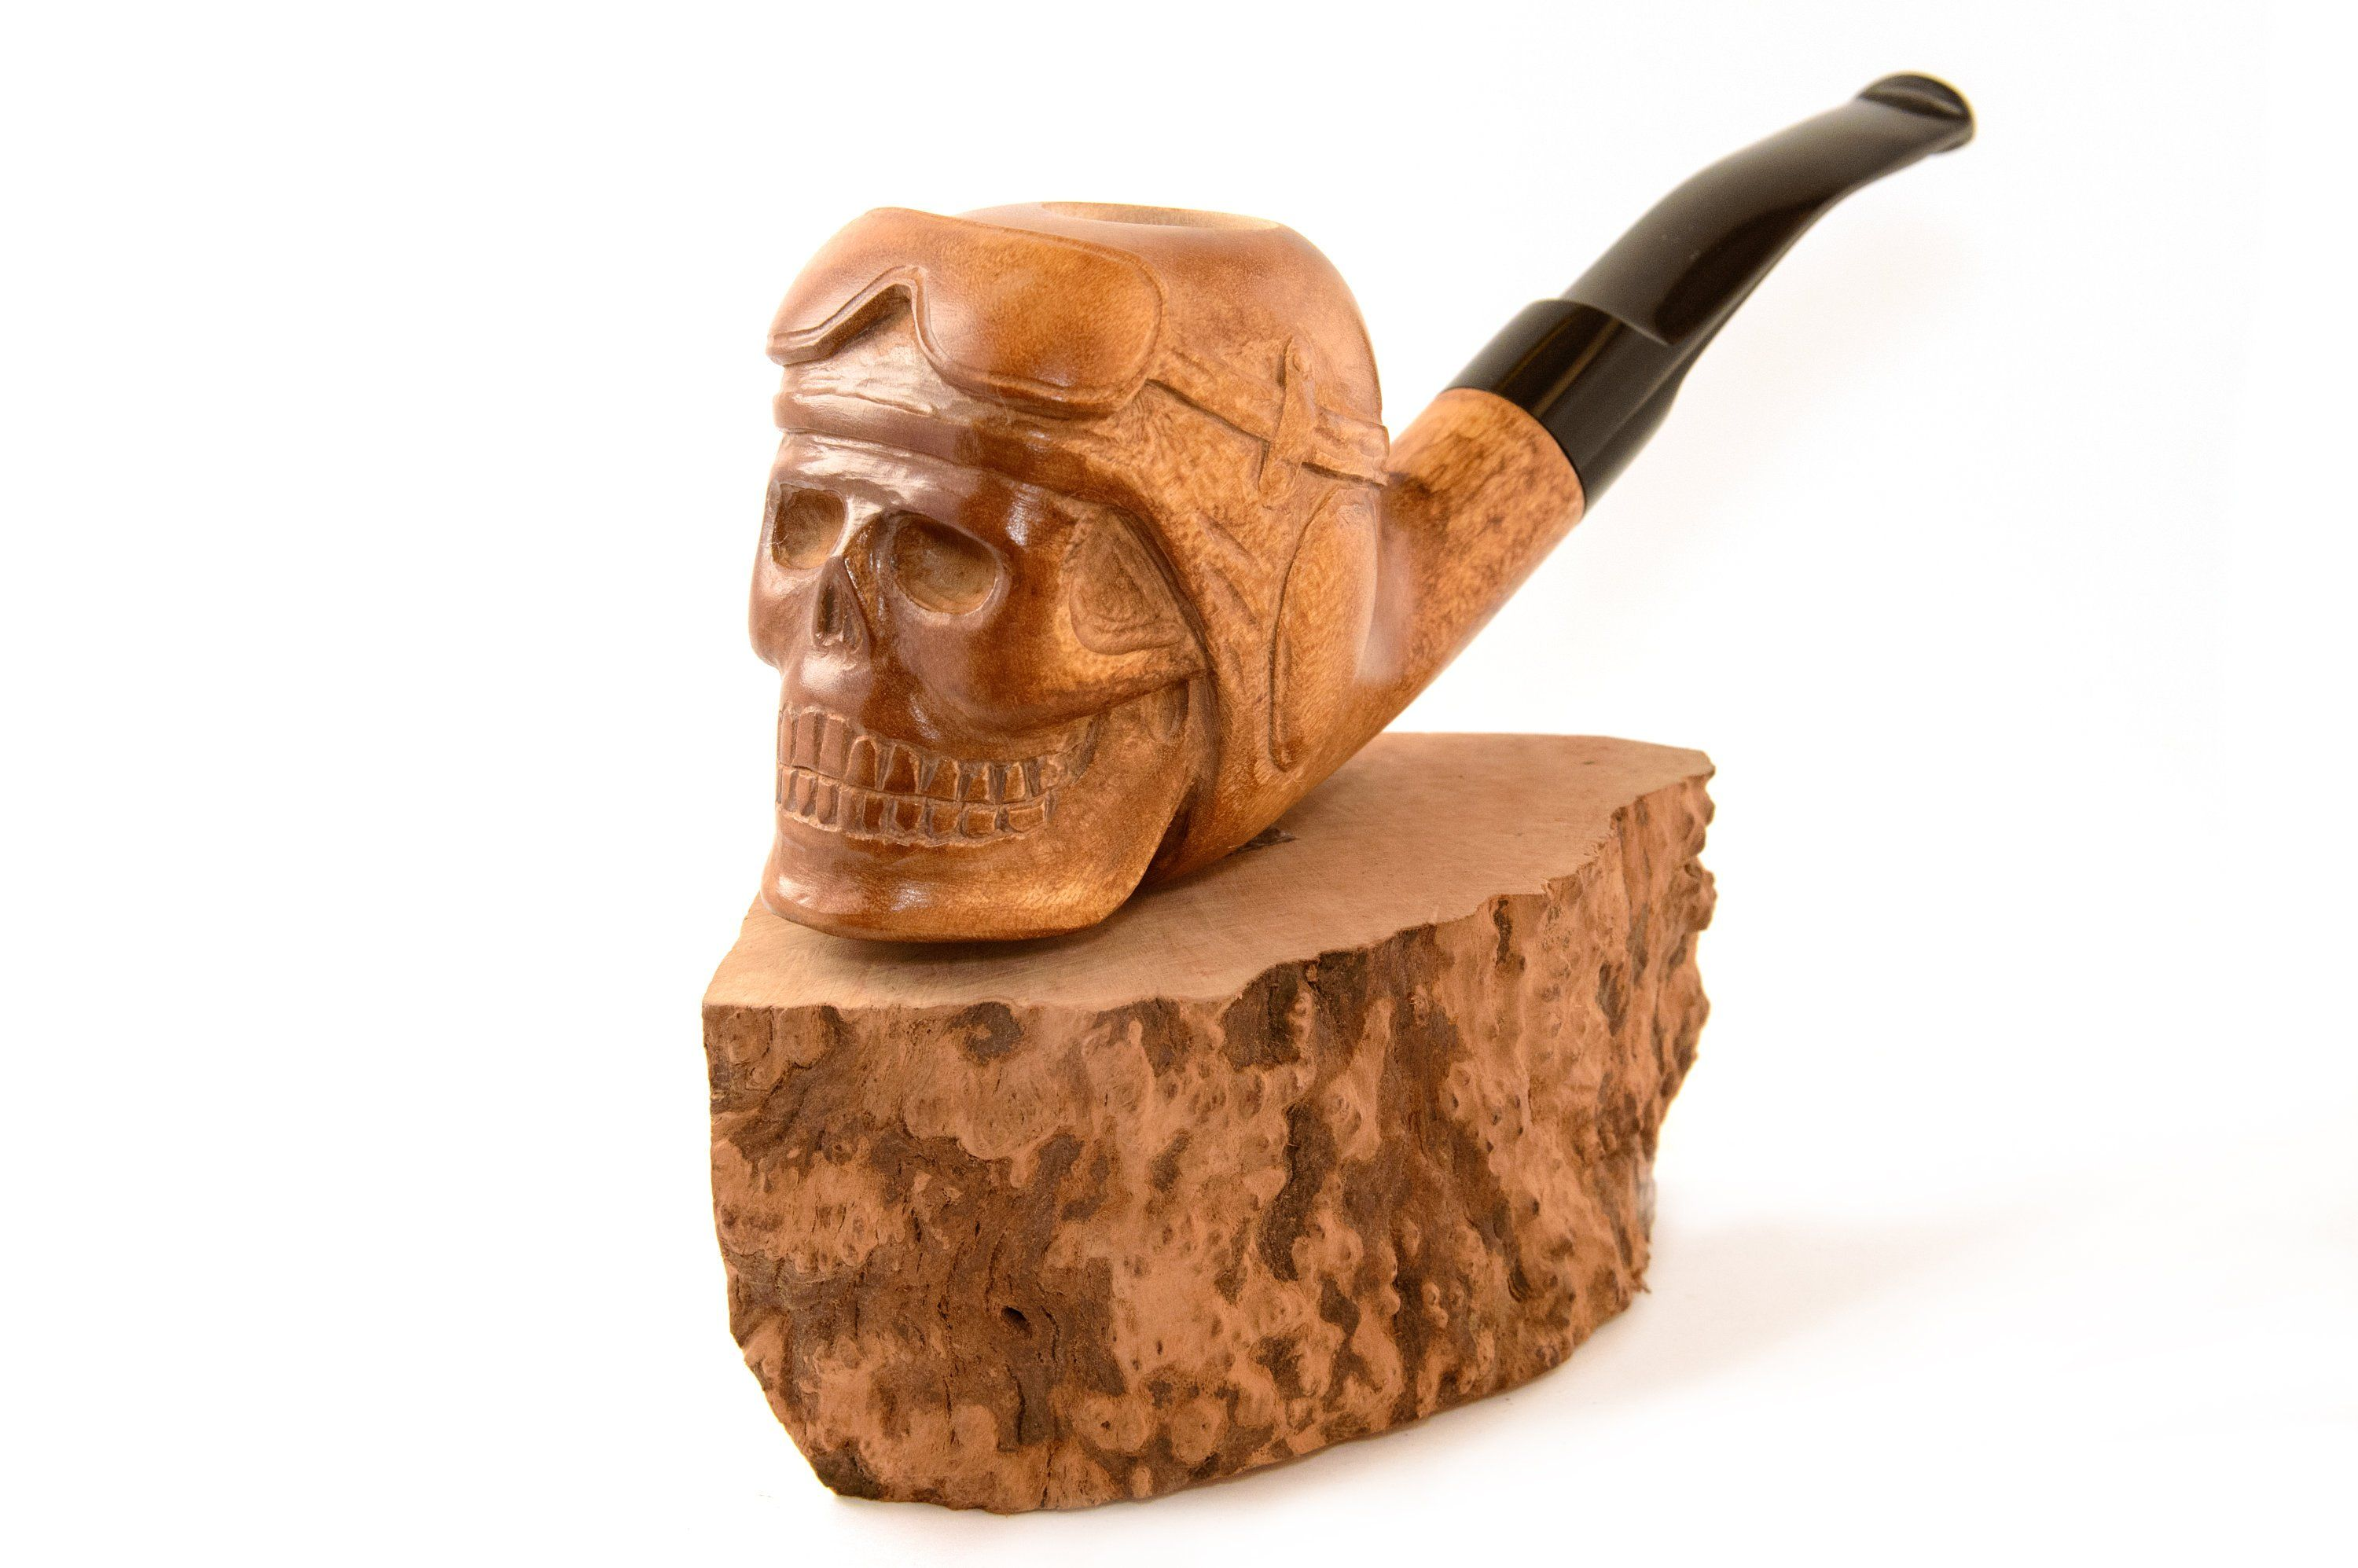 Native American Red Indian Chief Skull Tobacco pipe hand carved  Wooden bowl for smoking from pear wood Birthday Anniversary gift for man